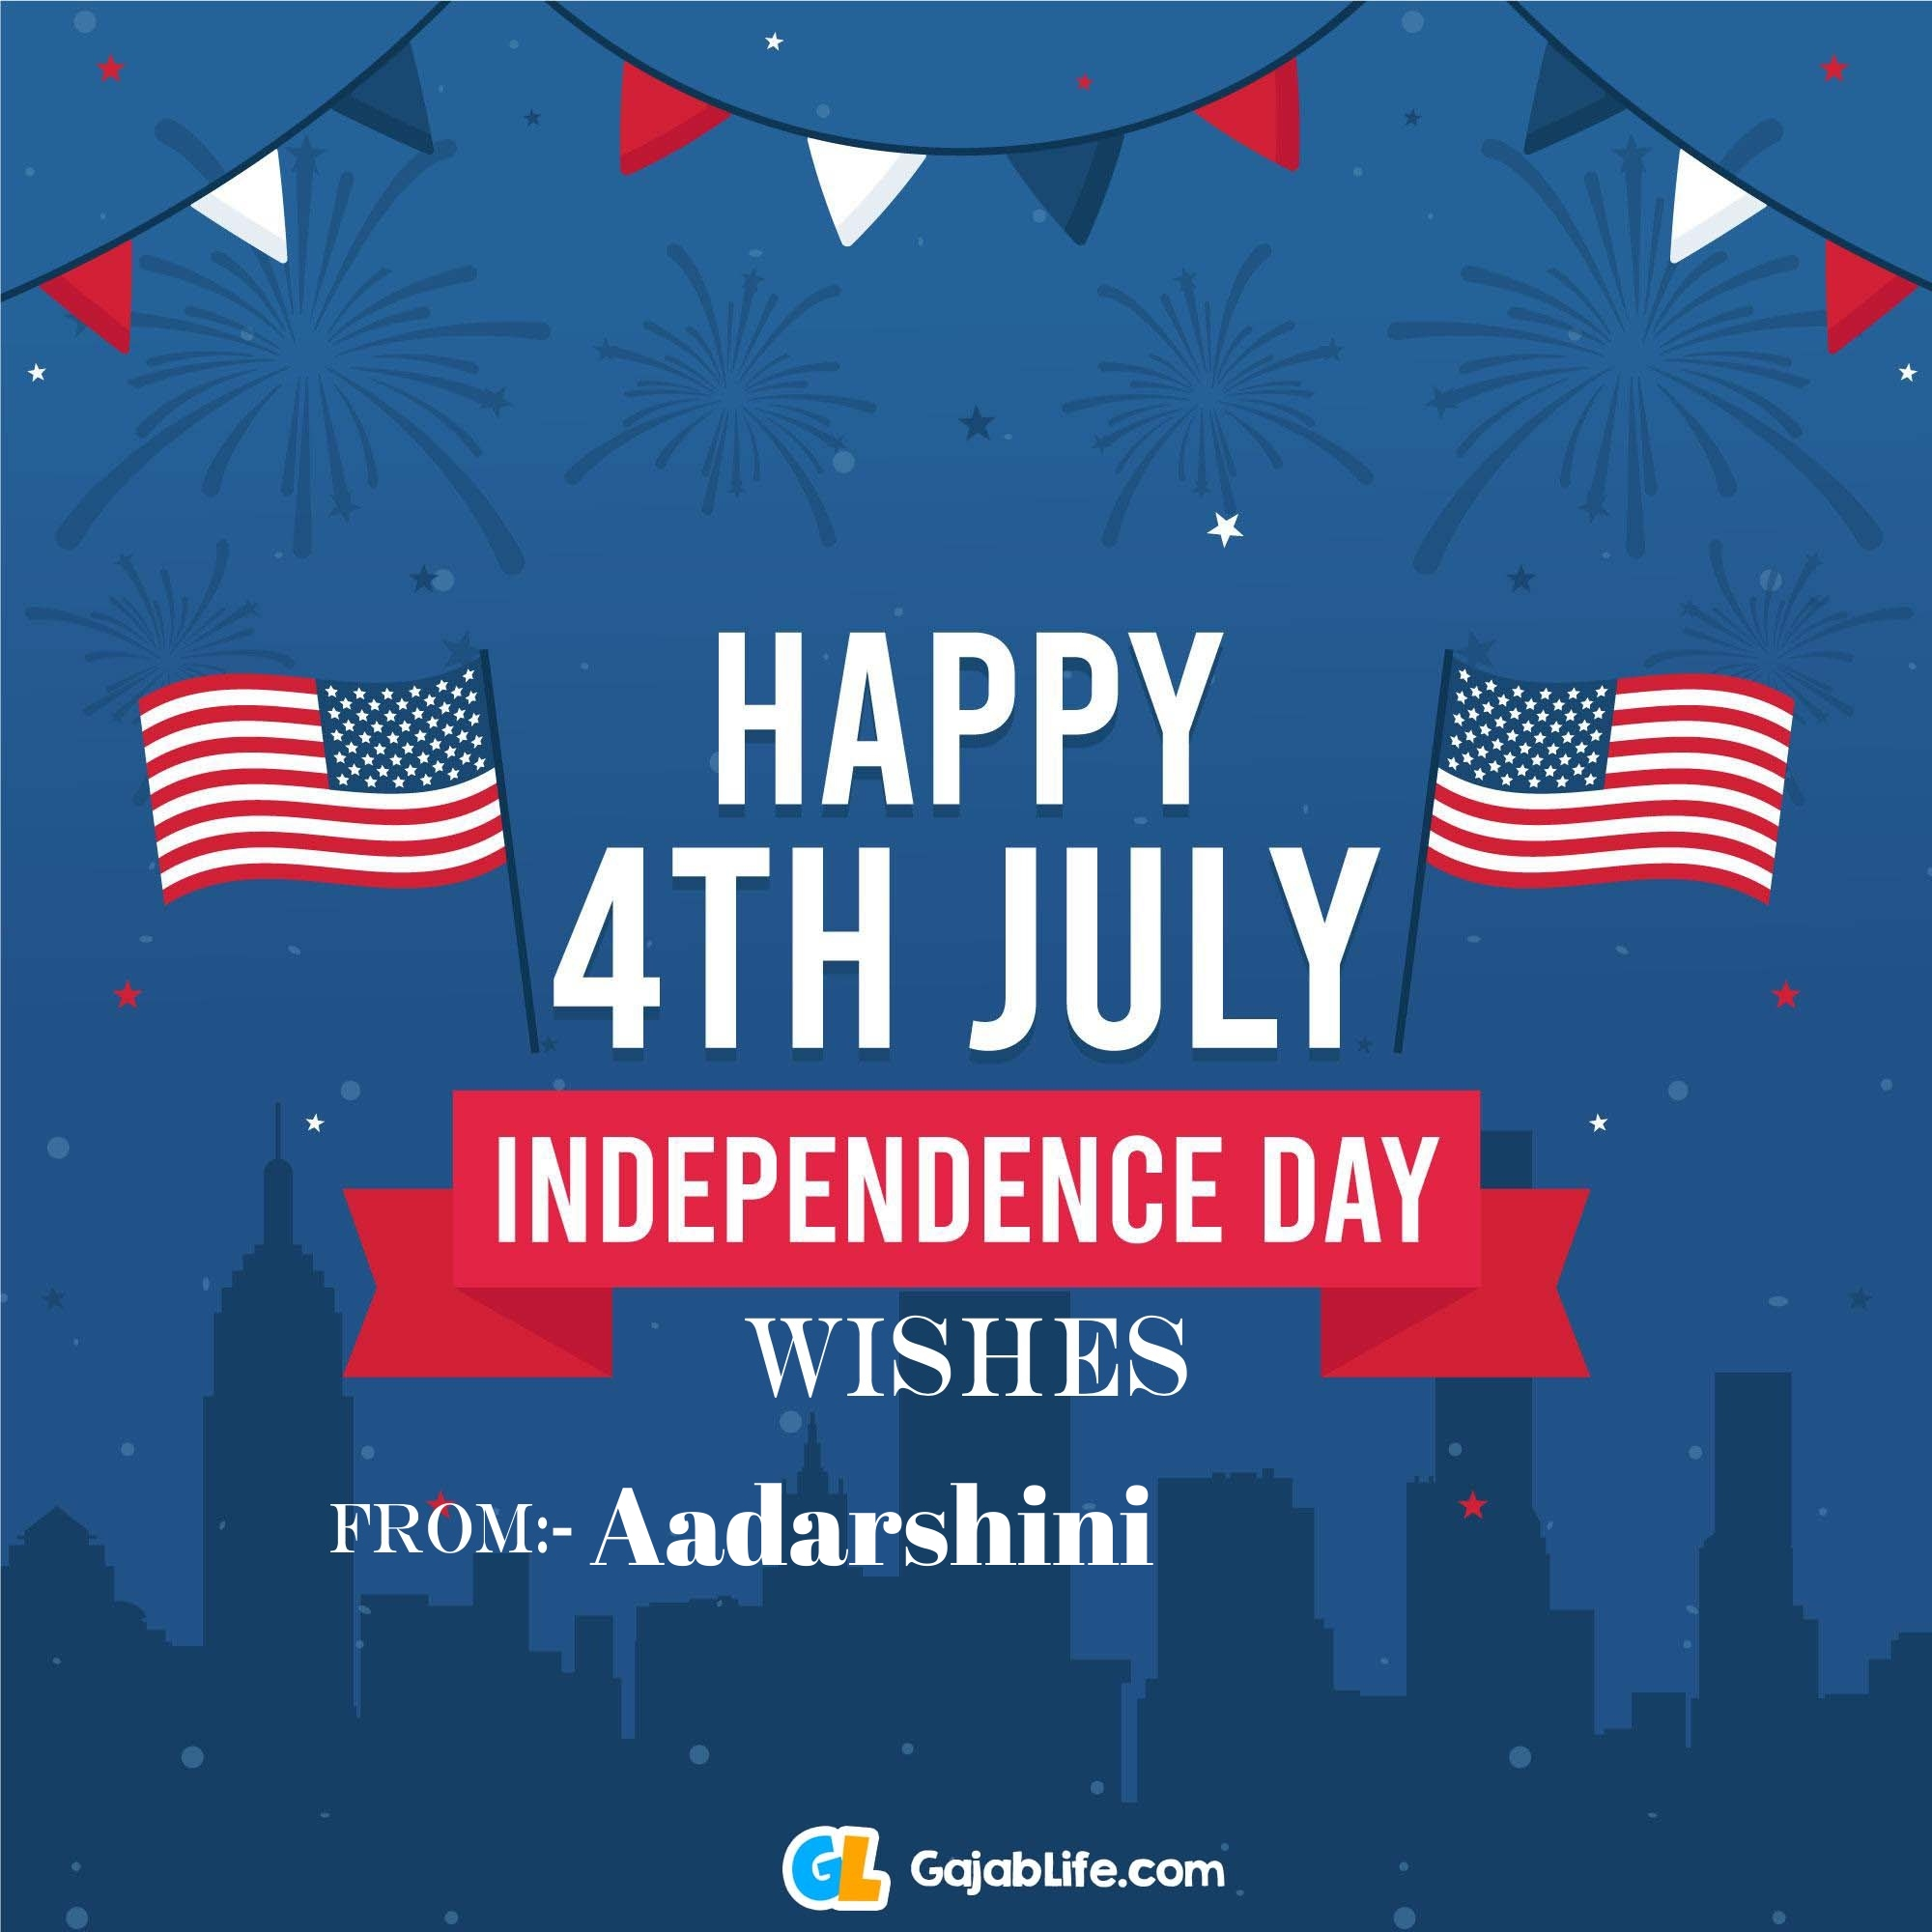 Aadarshini happy independence day united states of america images